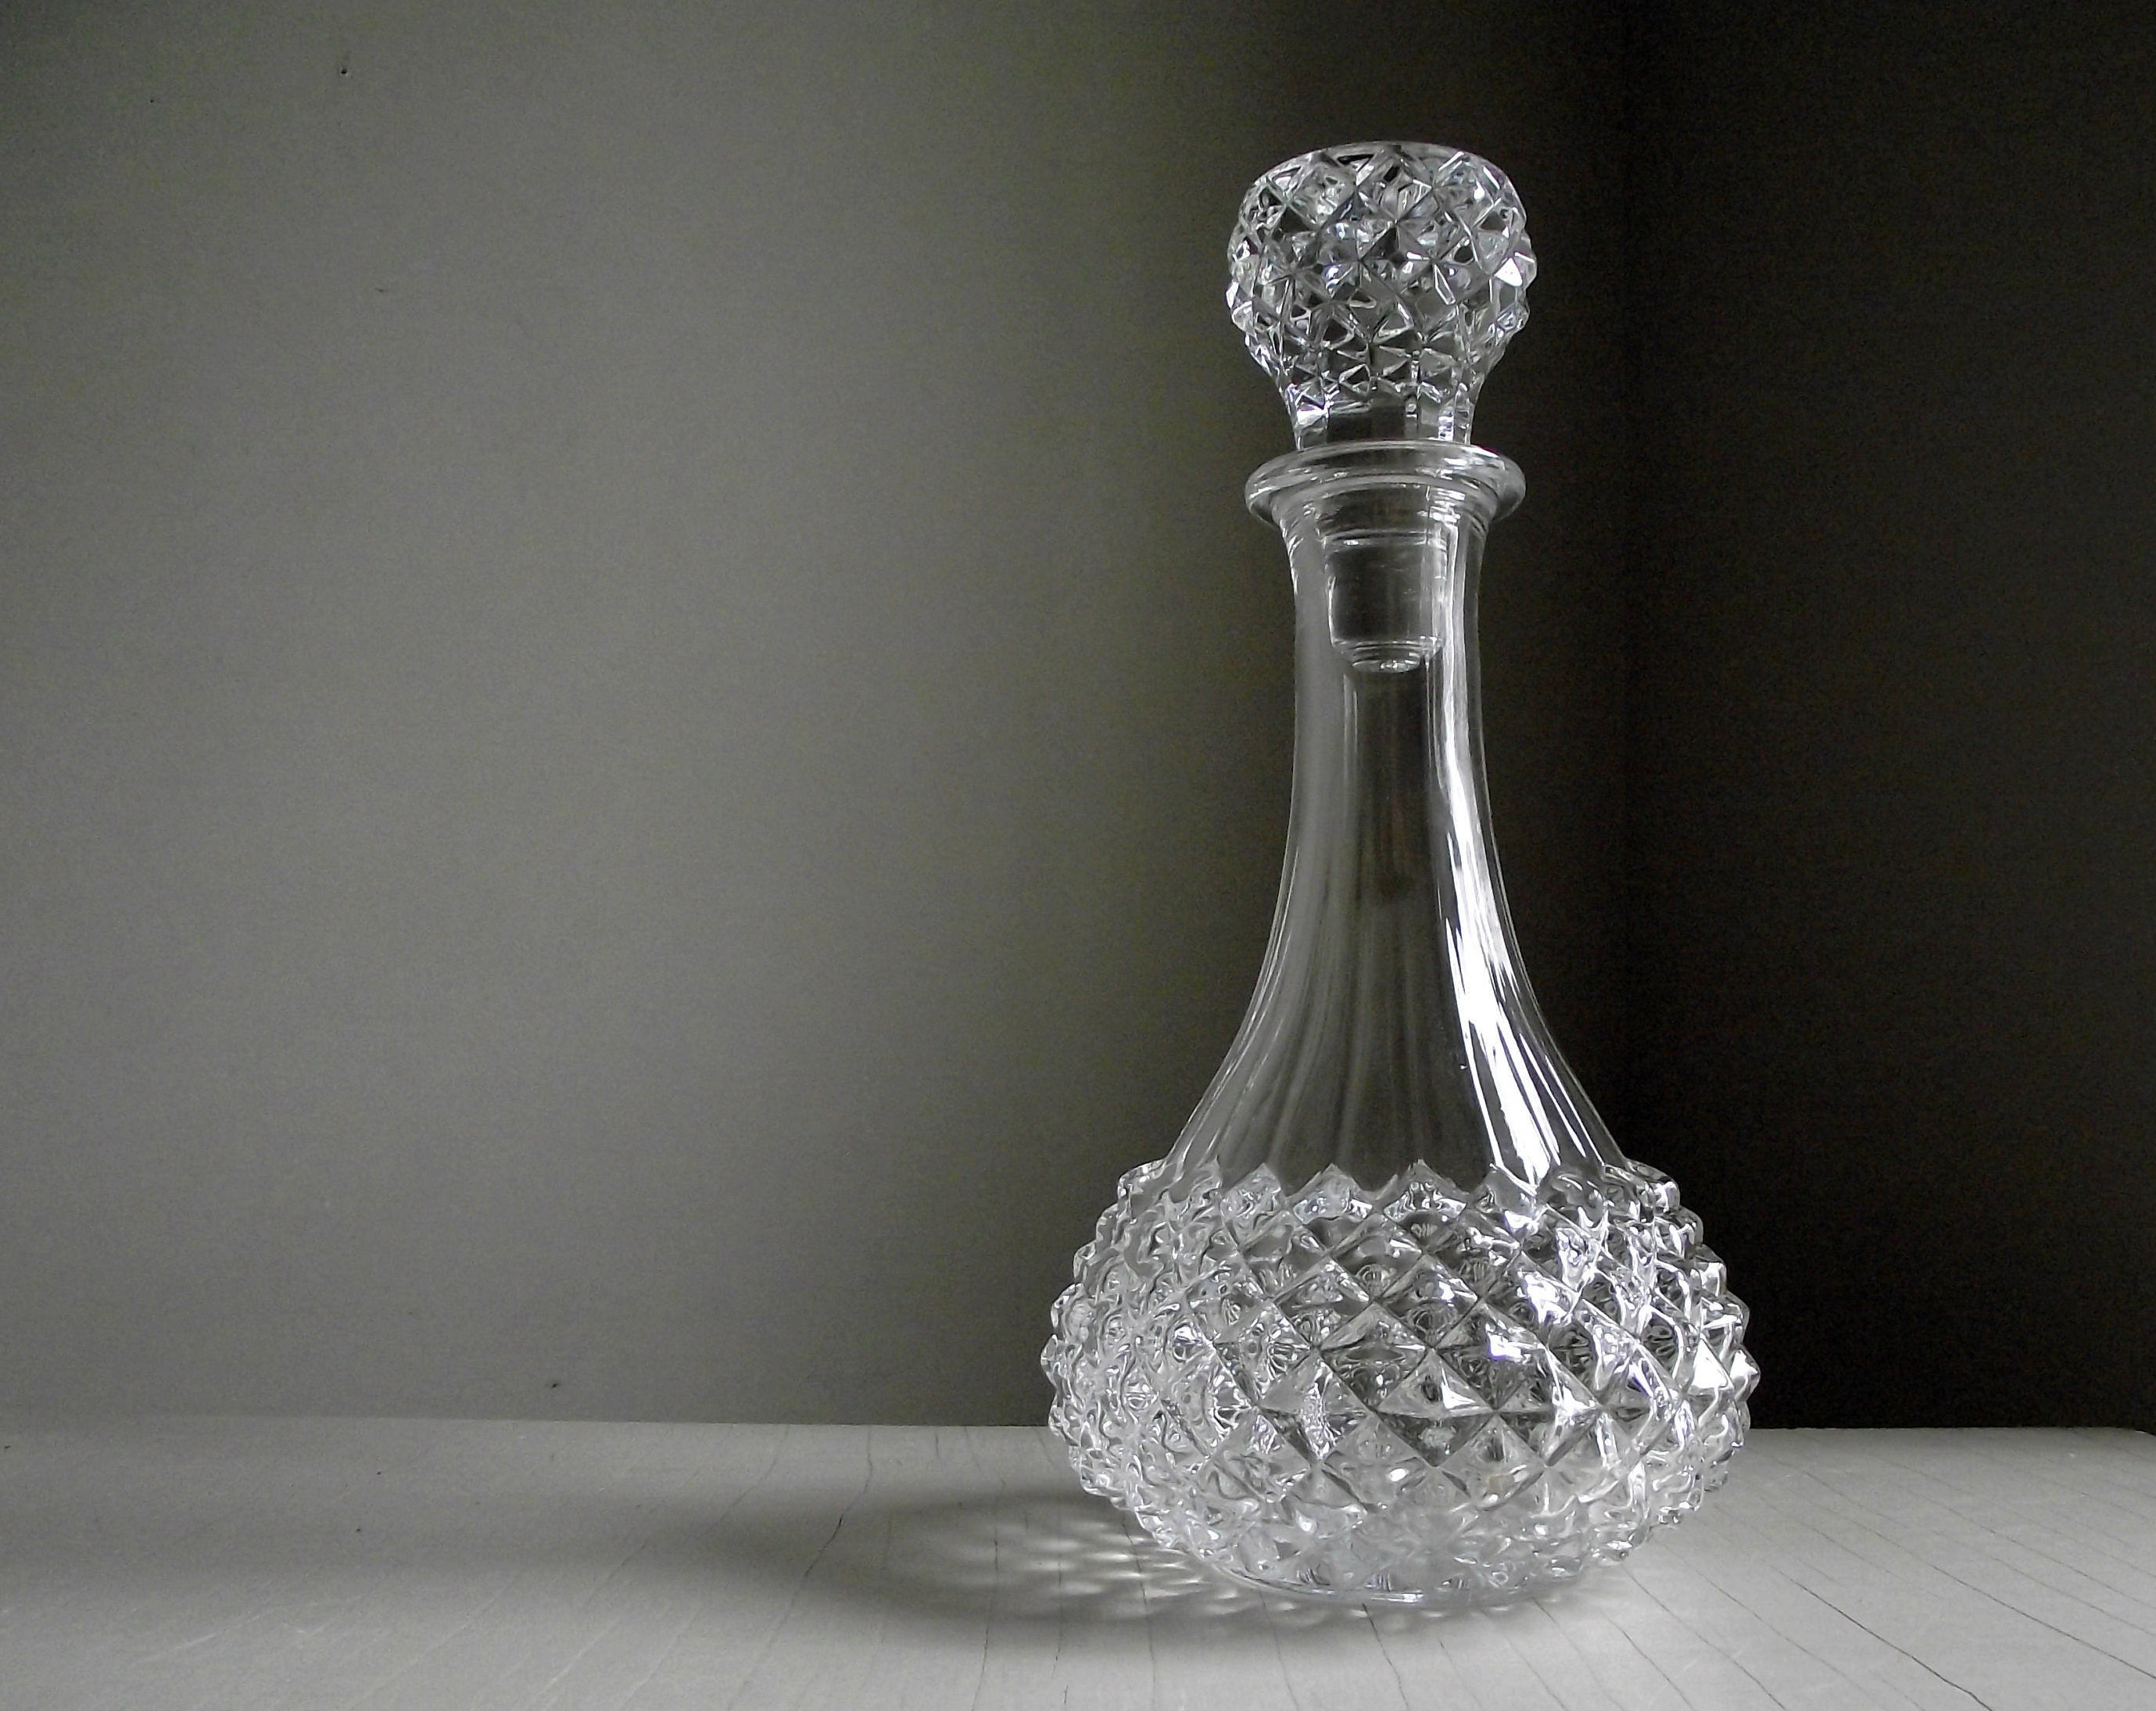 Cristal Darques France.Lead Crystal Decanter Stopper Cristal D Arques France Etsy